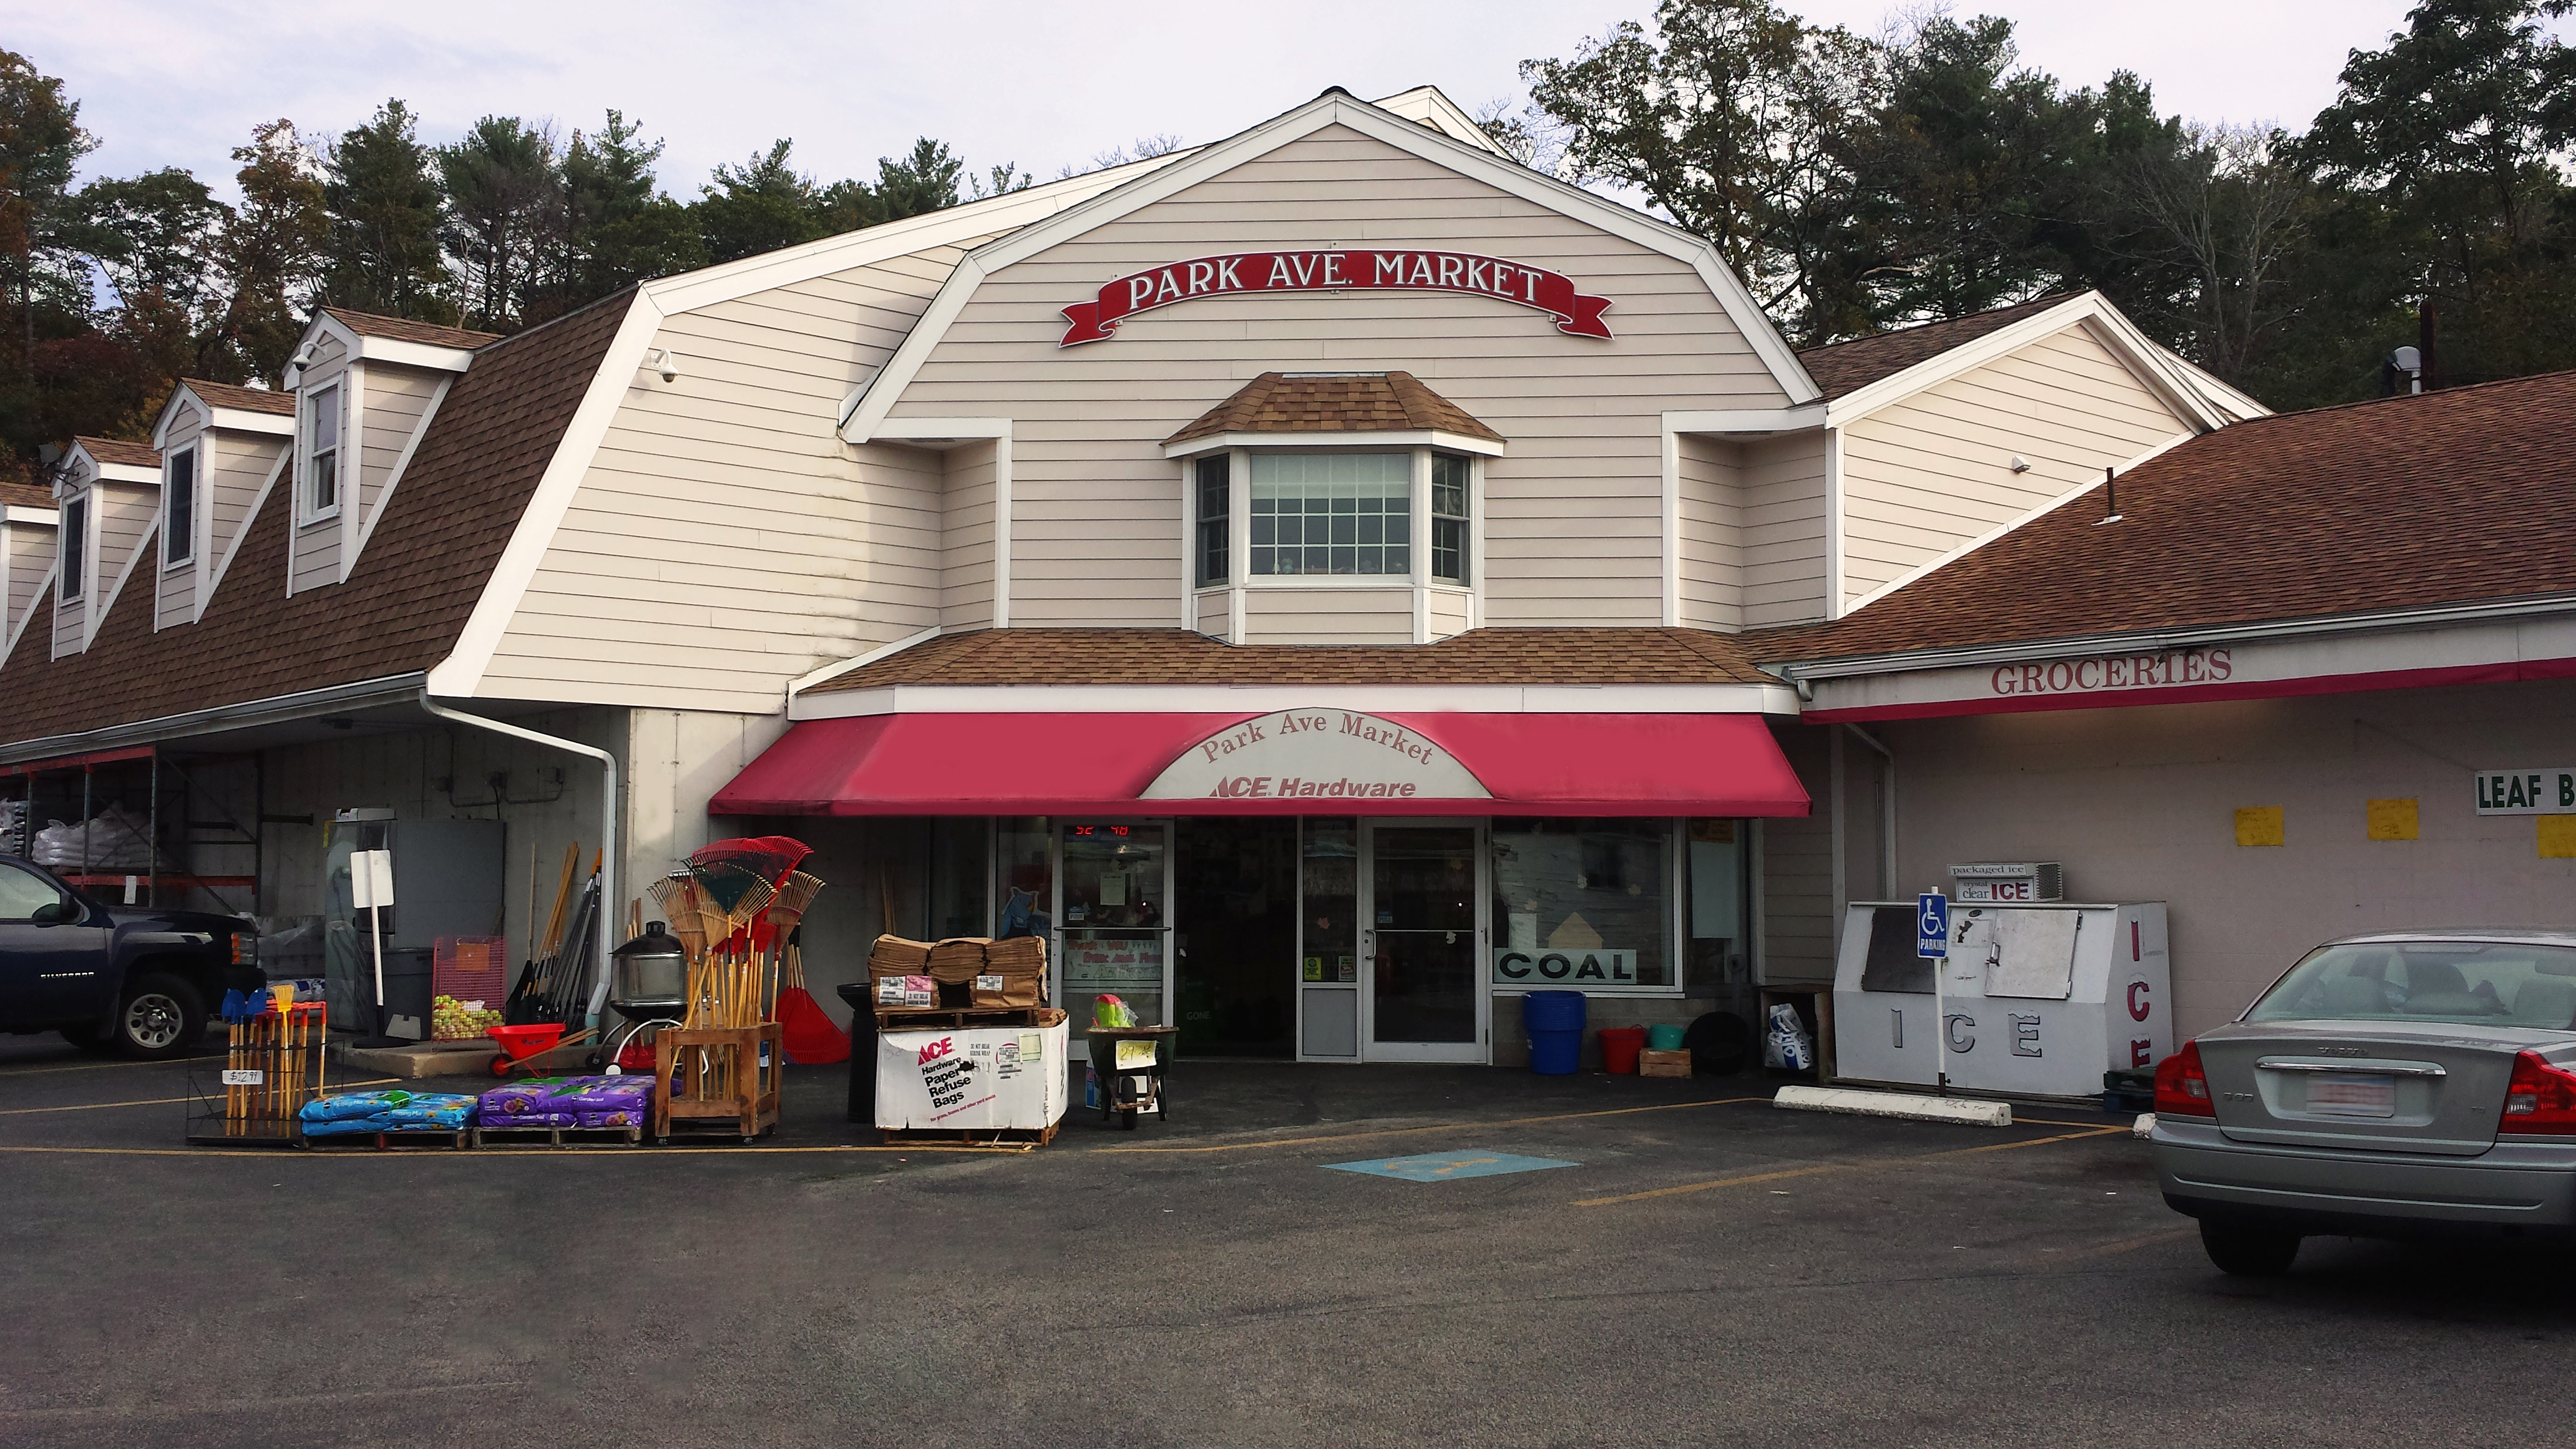 About | Park Ave Ace Hardware